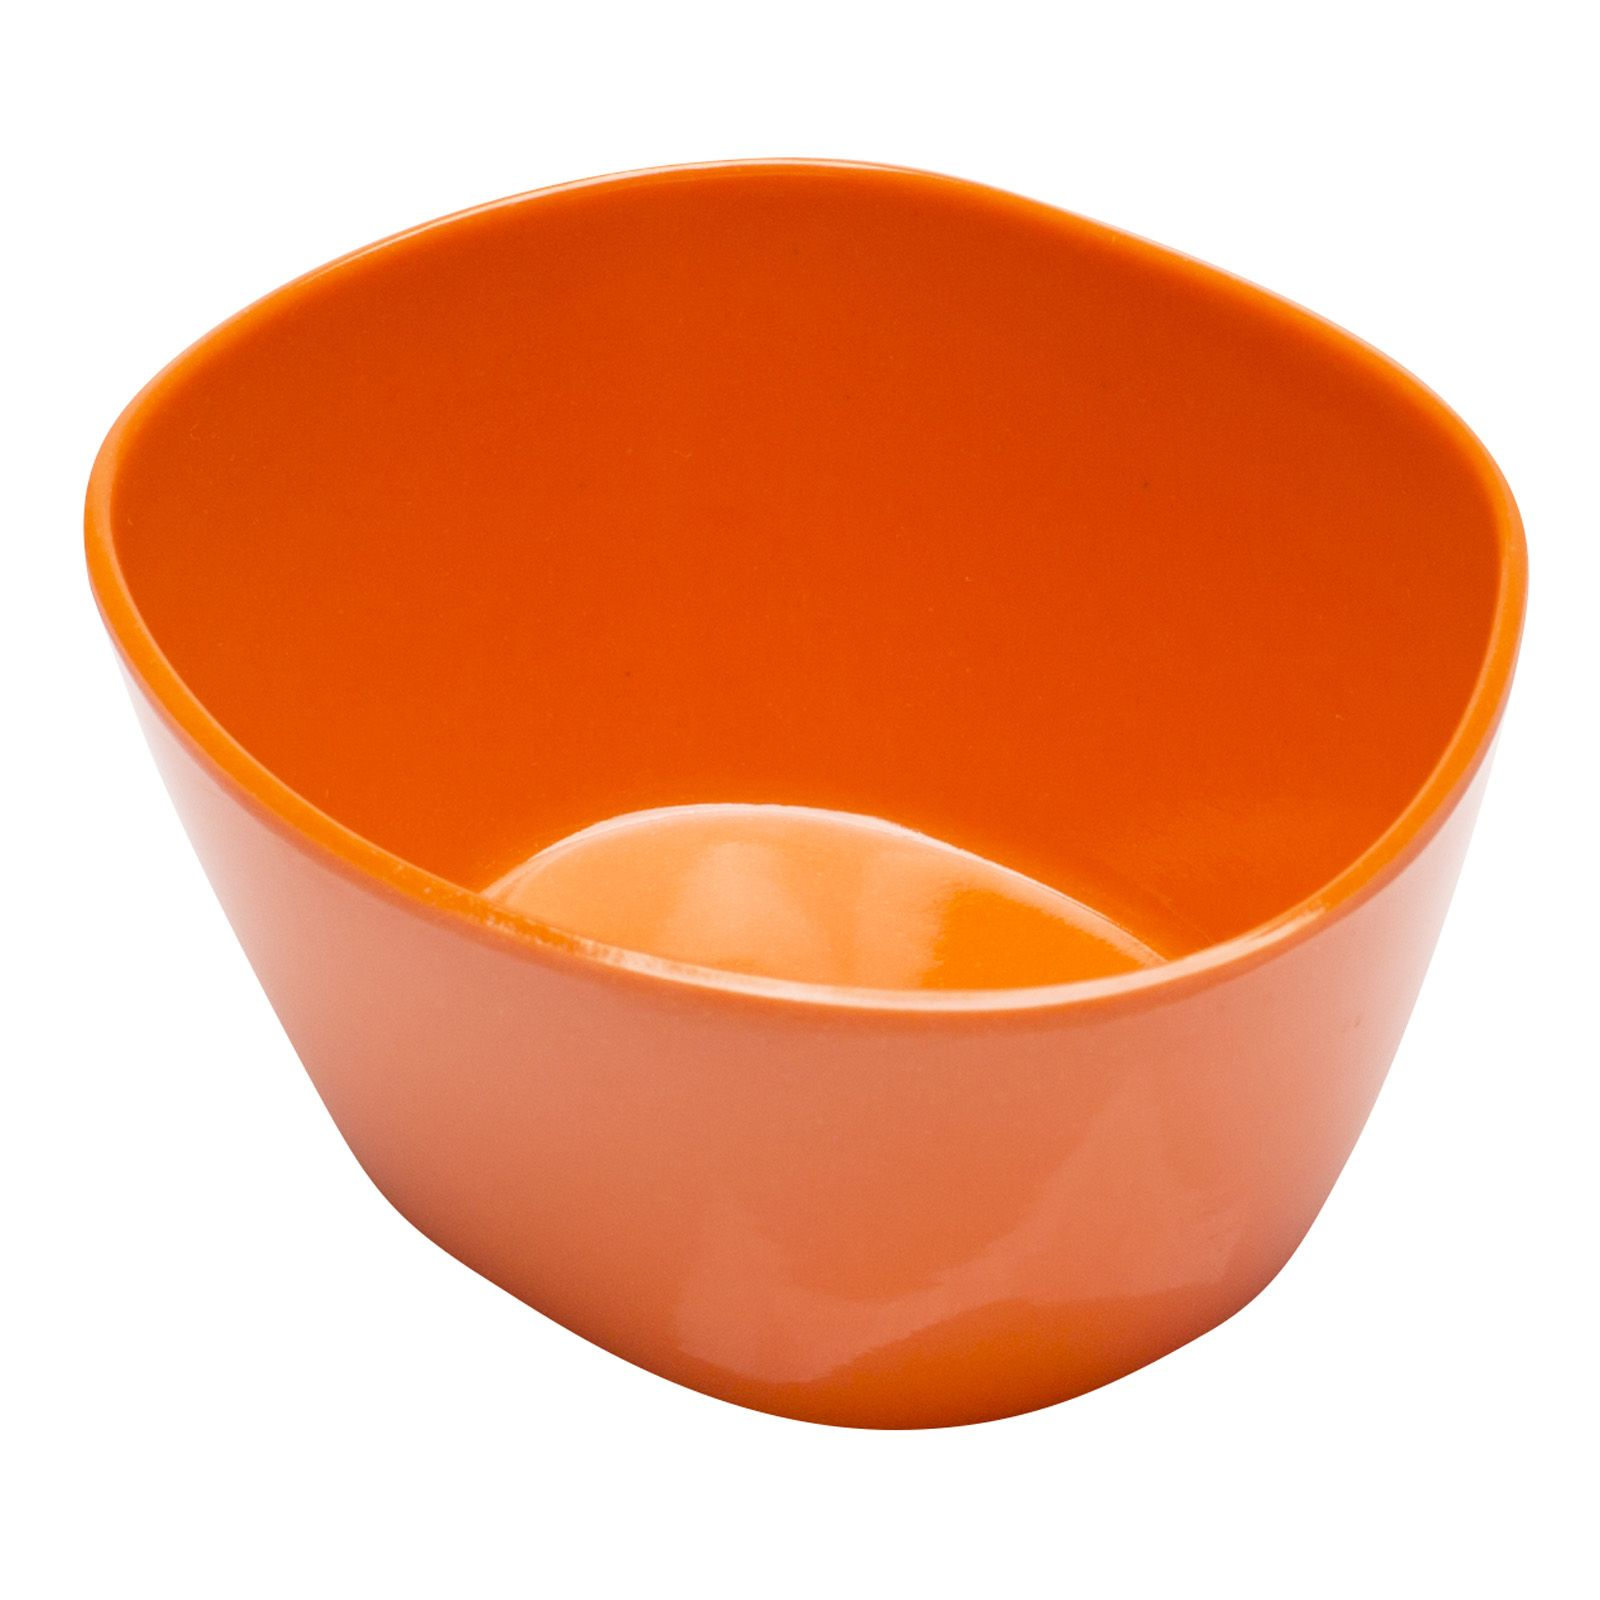 Moso Bamboo Tapas Bowl Orange front view Appetizer